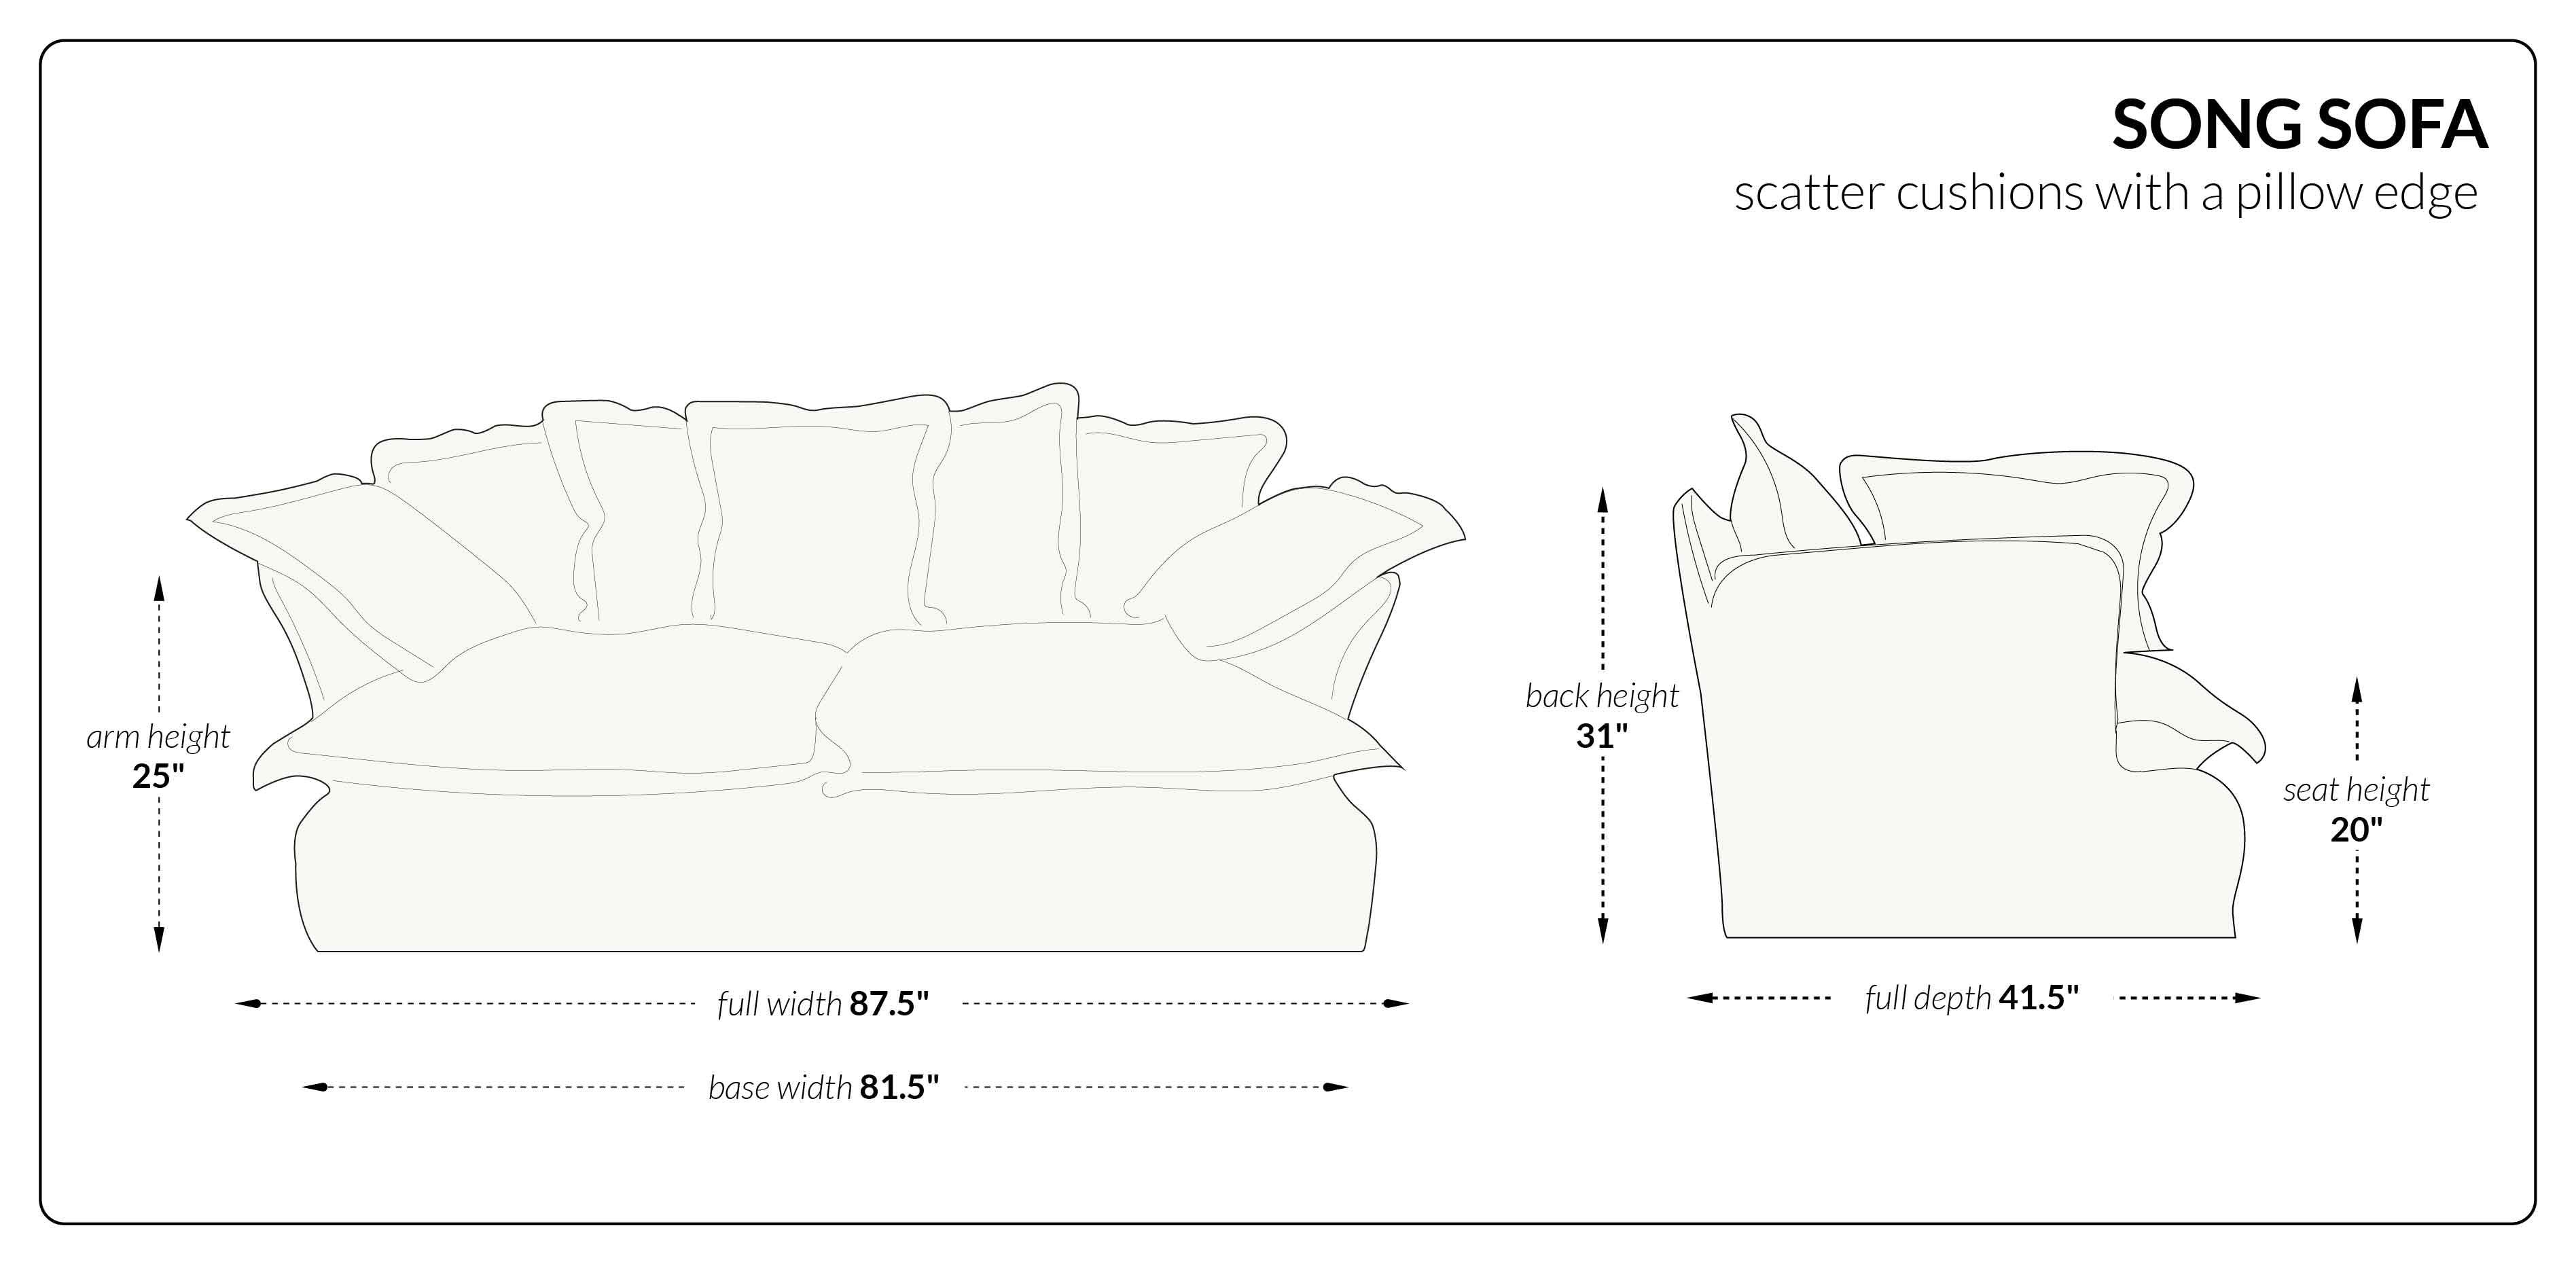 Song Sofa scatter